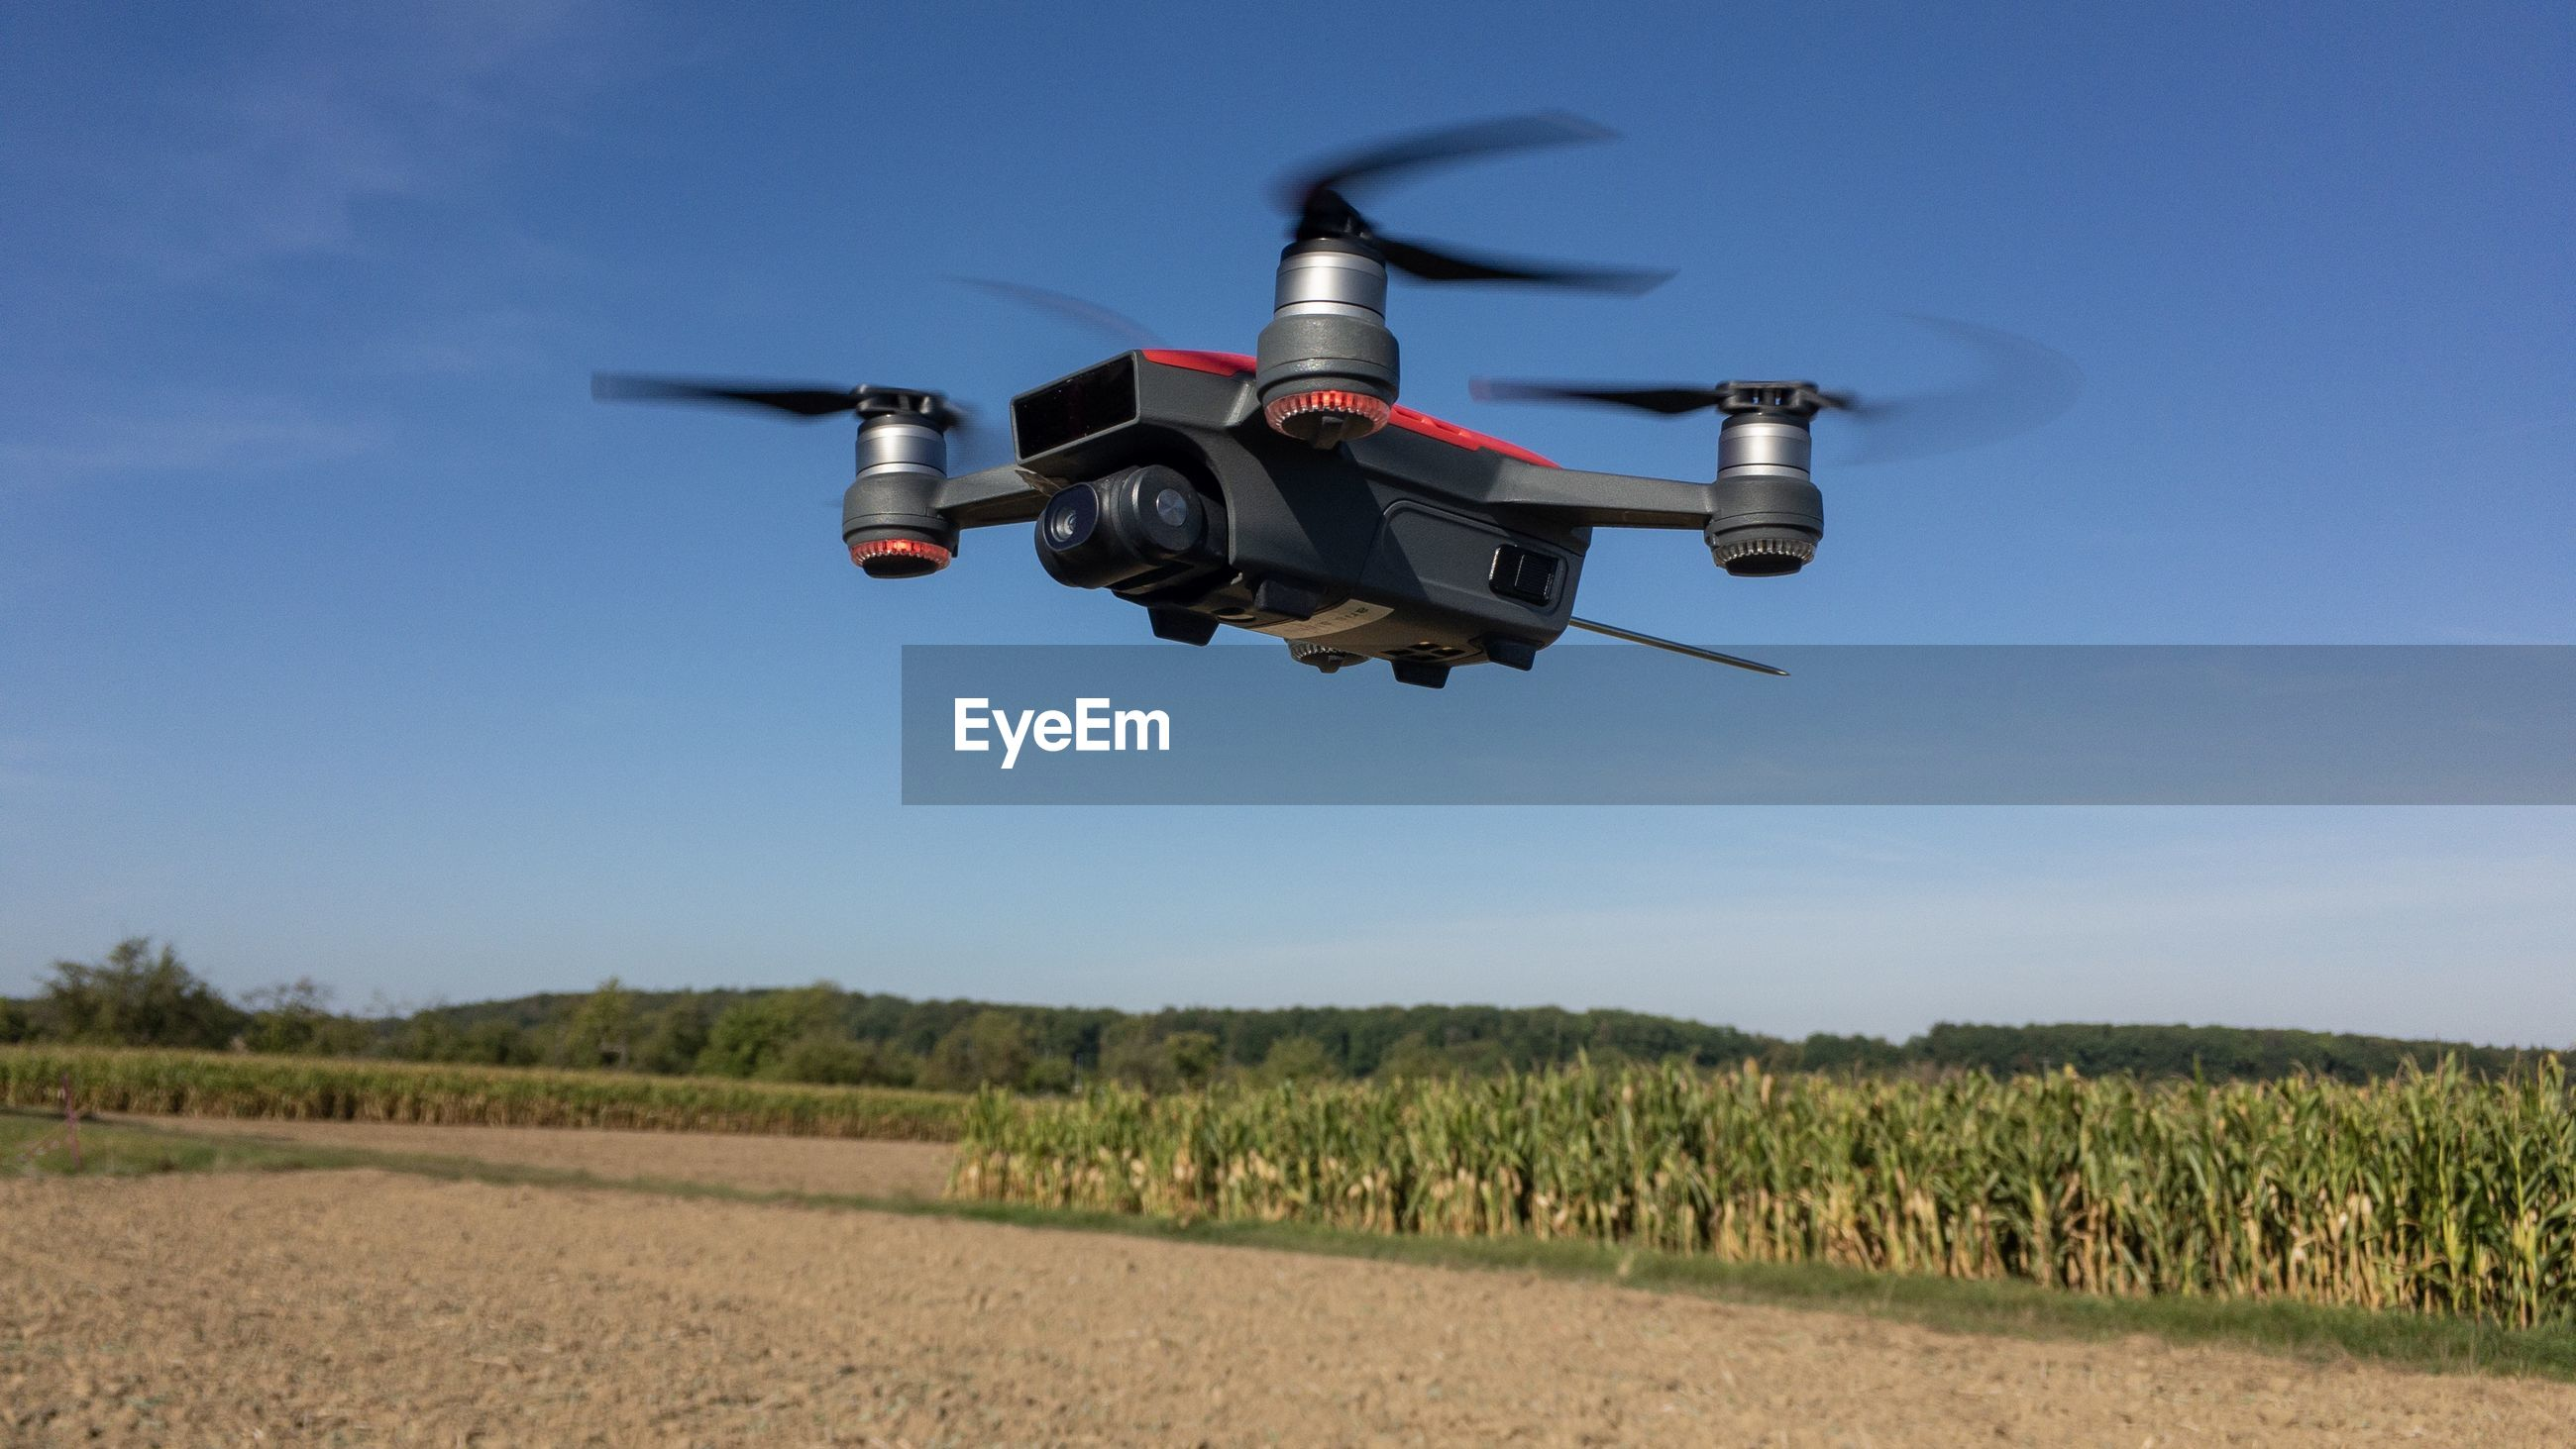 LOW ANGLE VIEW OF AIRPLANE FLYING OVER AGRICULTURAL FIELD